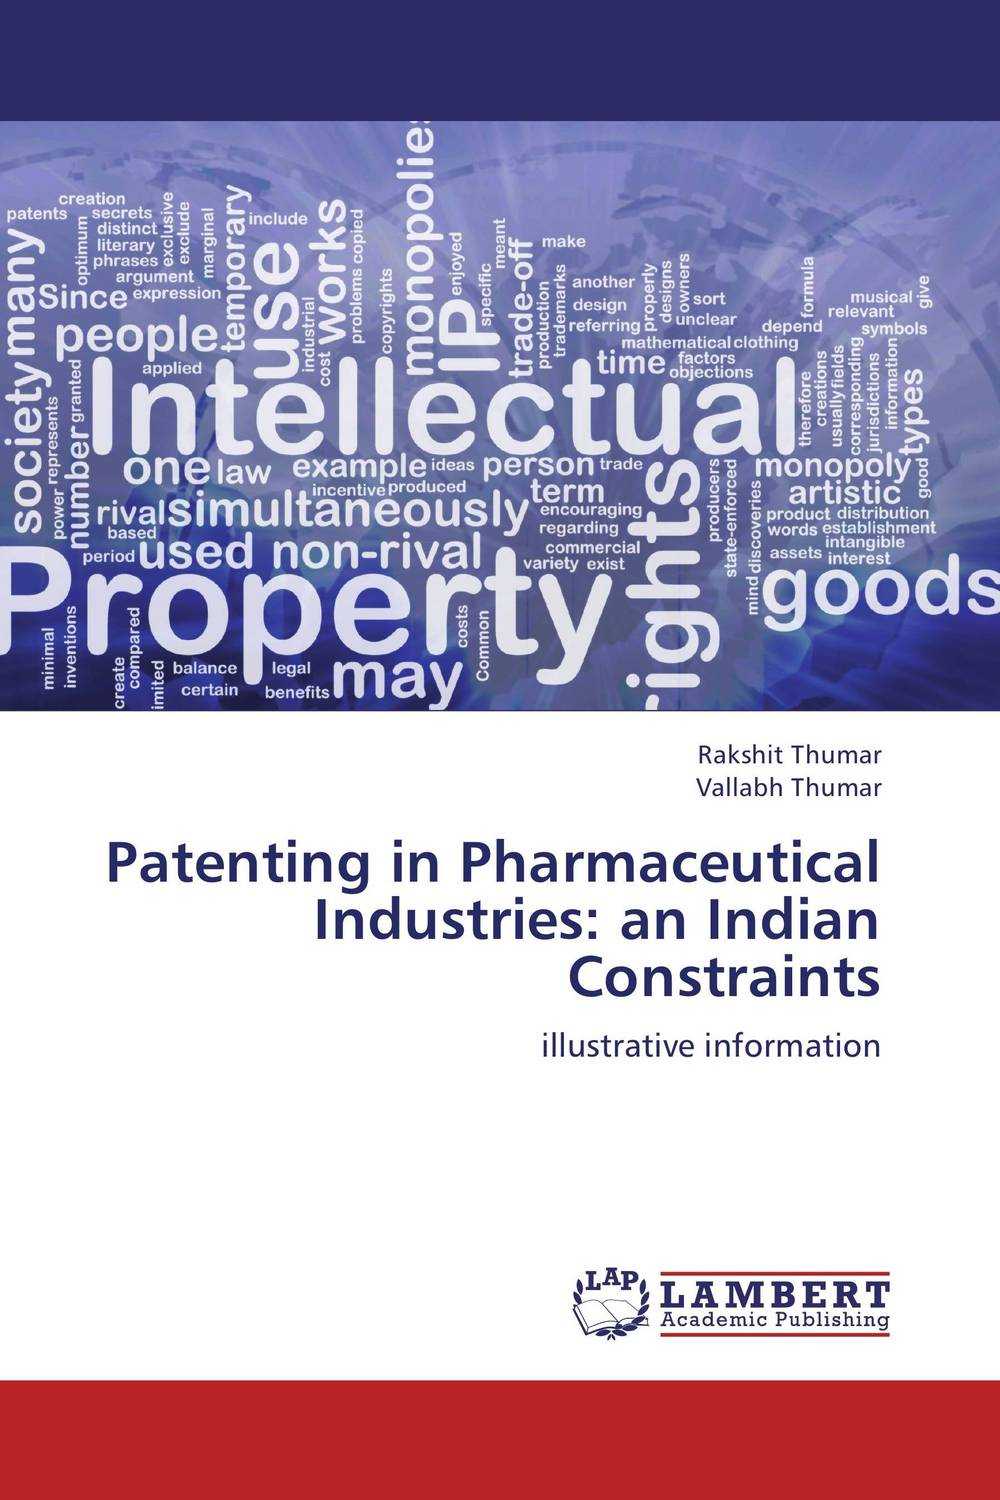 Patenting in Pharmaceutical Industries: an Indian Constraints pharmaceuticals